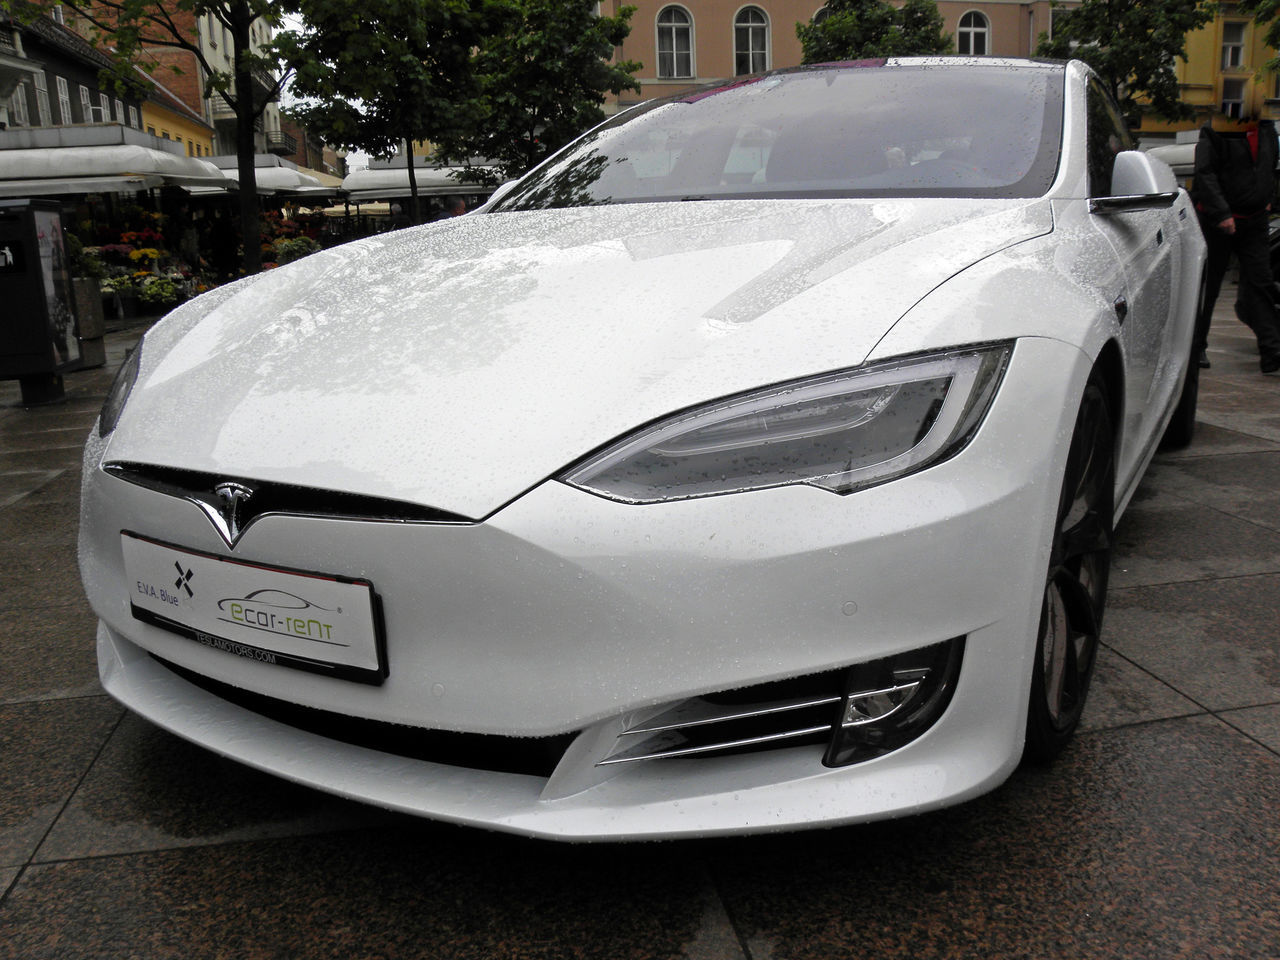 Tesla,car,Model S P100D,exhibition, Zagreb,Croatia,Europe,1 Automobile Car Car Close-up Day Design E-power Eu Europe Exhibition Fast Front View Land Vehicle Mode Of Transport Model S P100D No People Outdoors Speed Tesla Transportation Vehicle Zagreb, Croatia